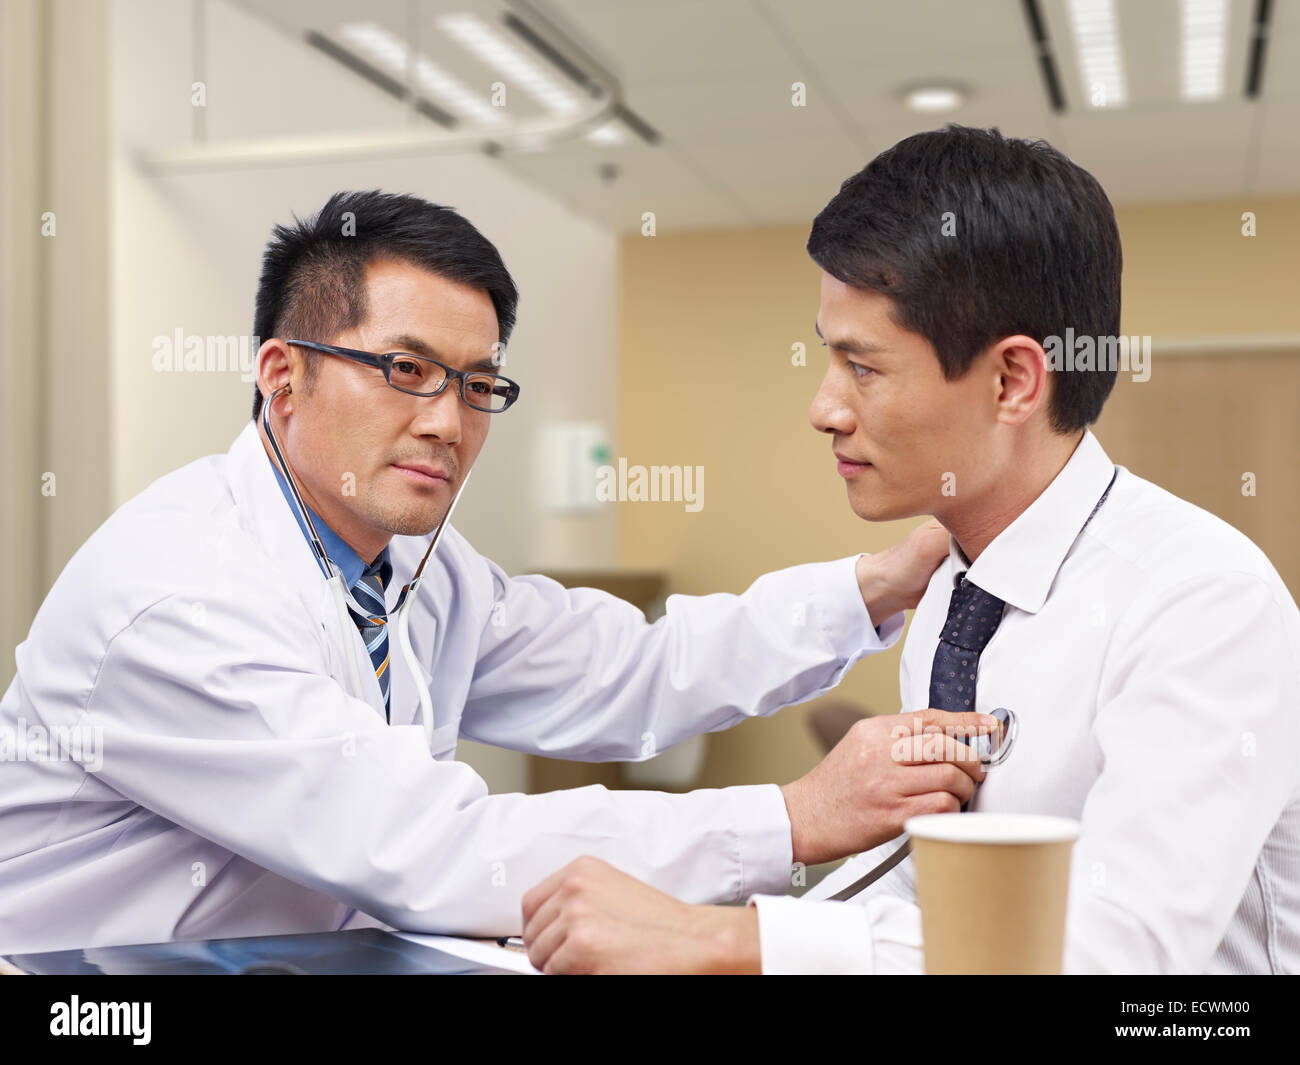 doctor and patient - Stock Image